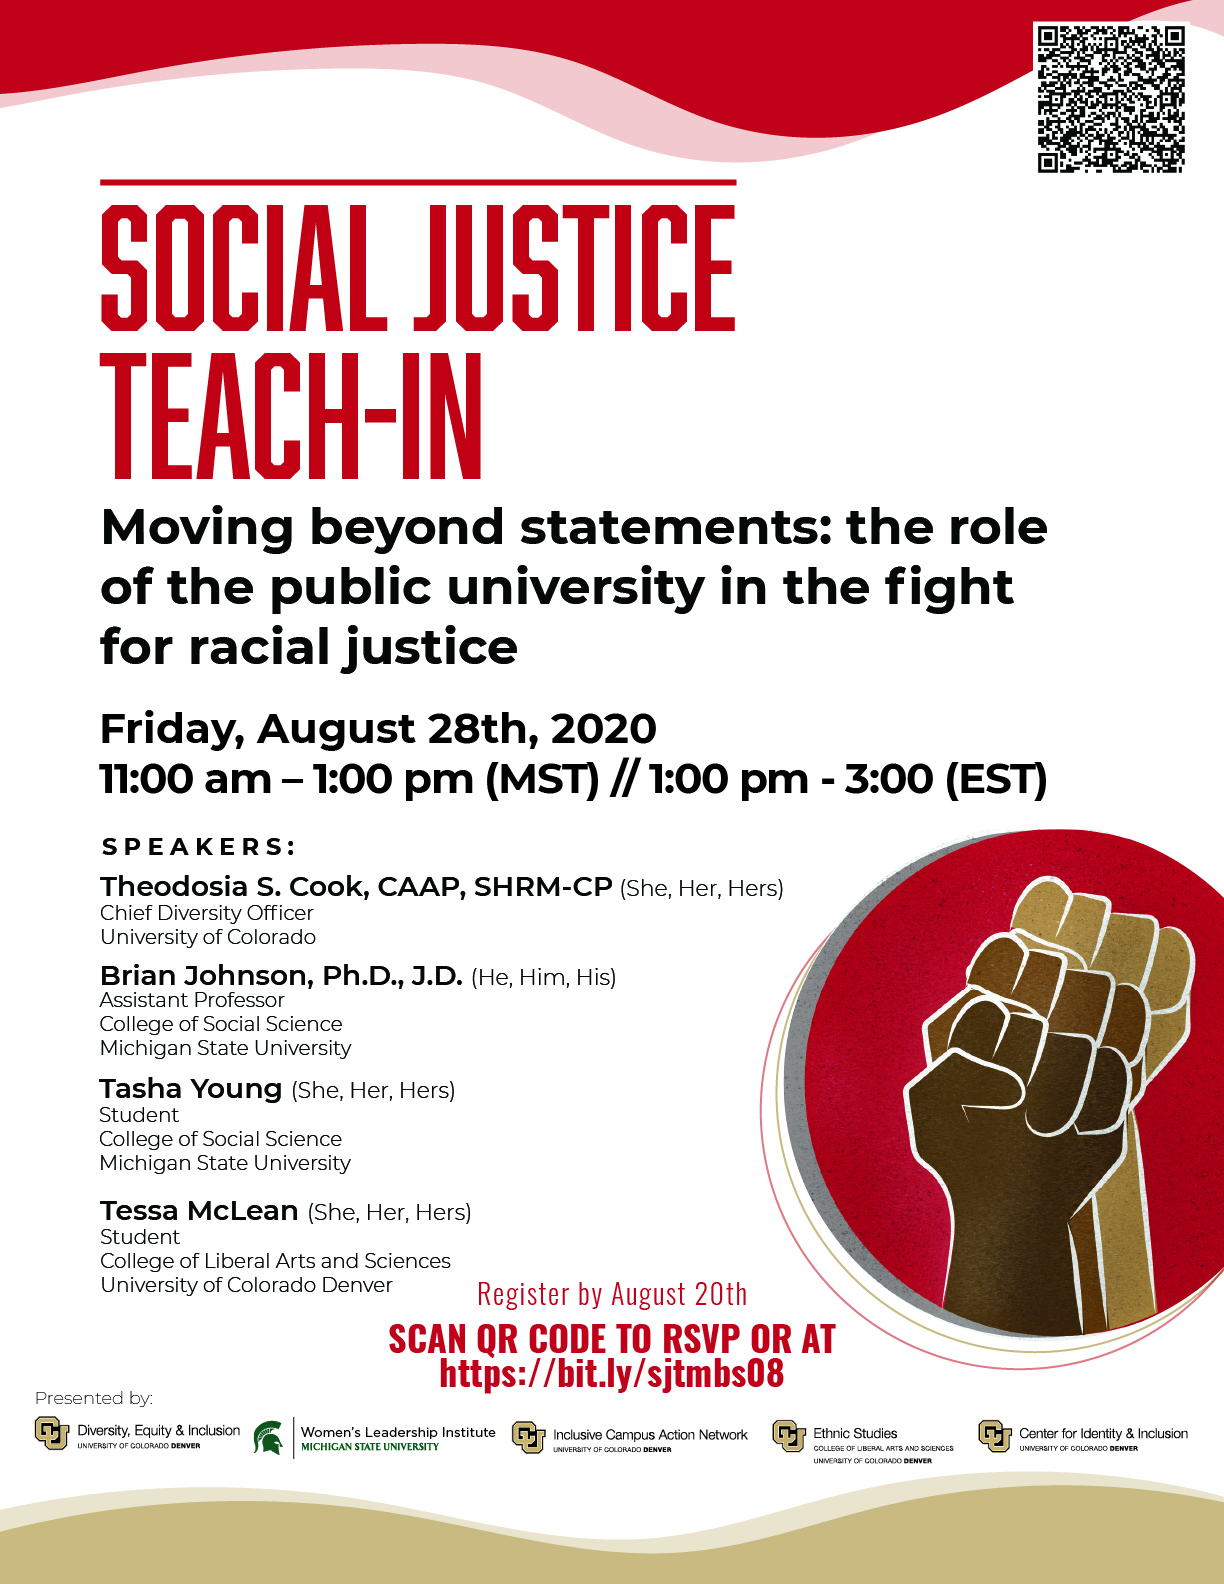 Moving beyond statements the role of the public university in the fight for racial justice